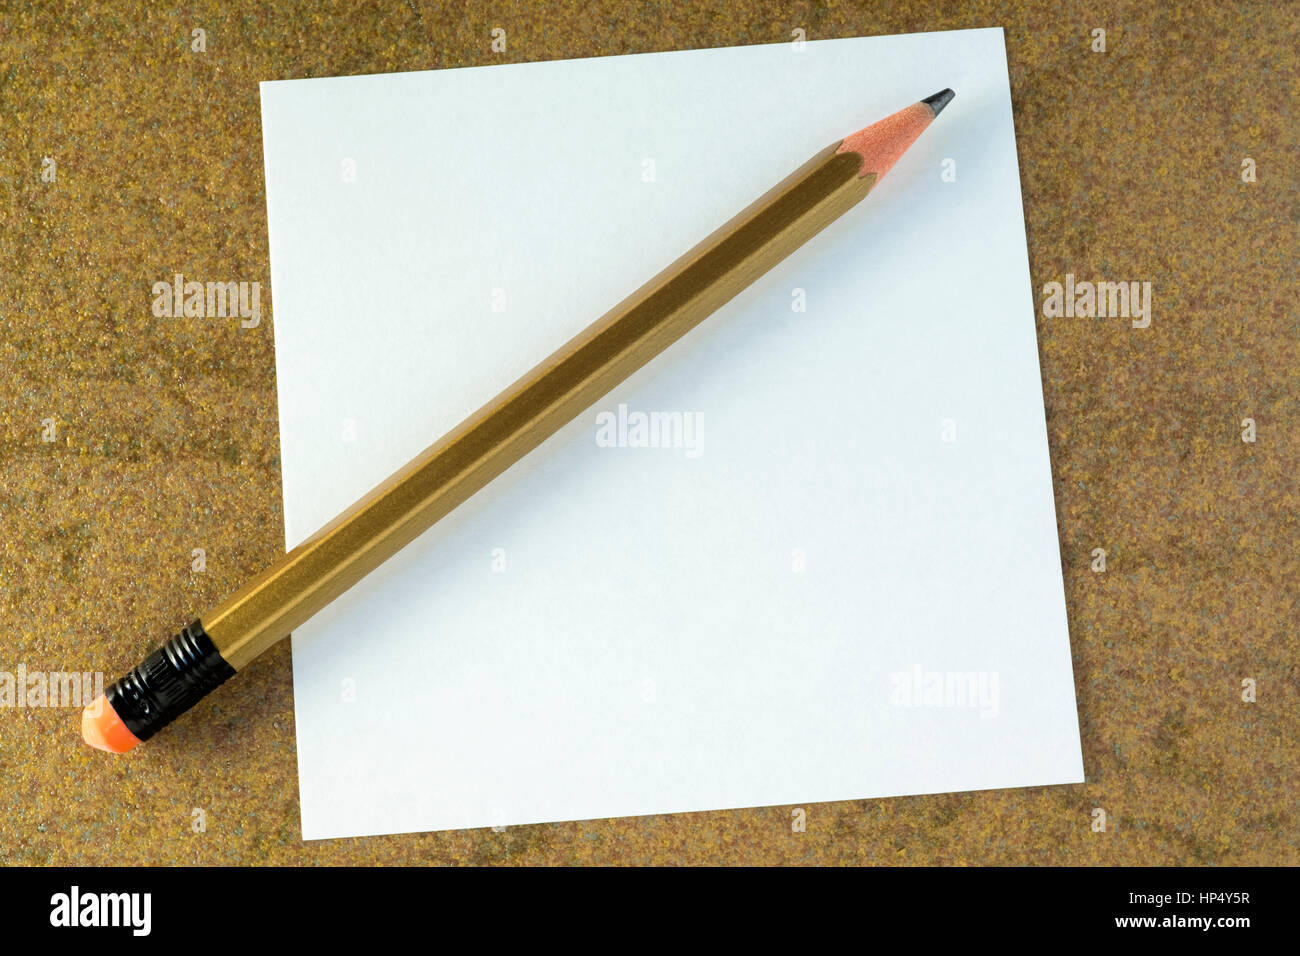 Plane pencil and empty white sheet of paper - Stock Image